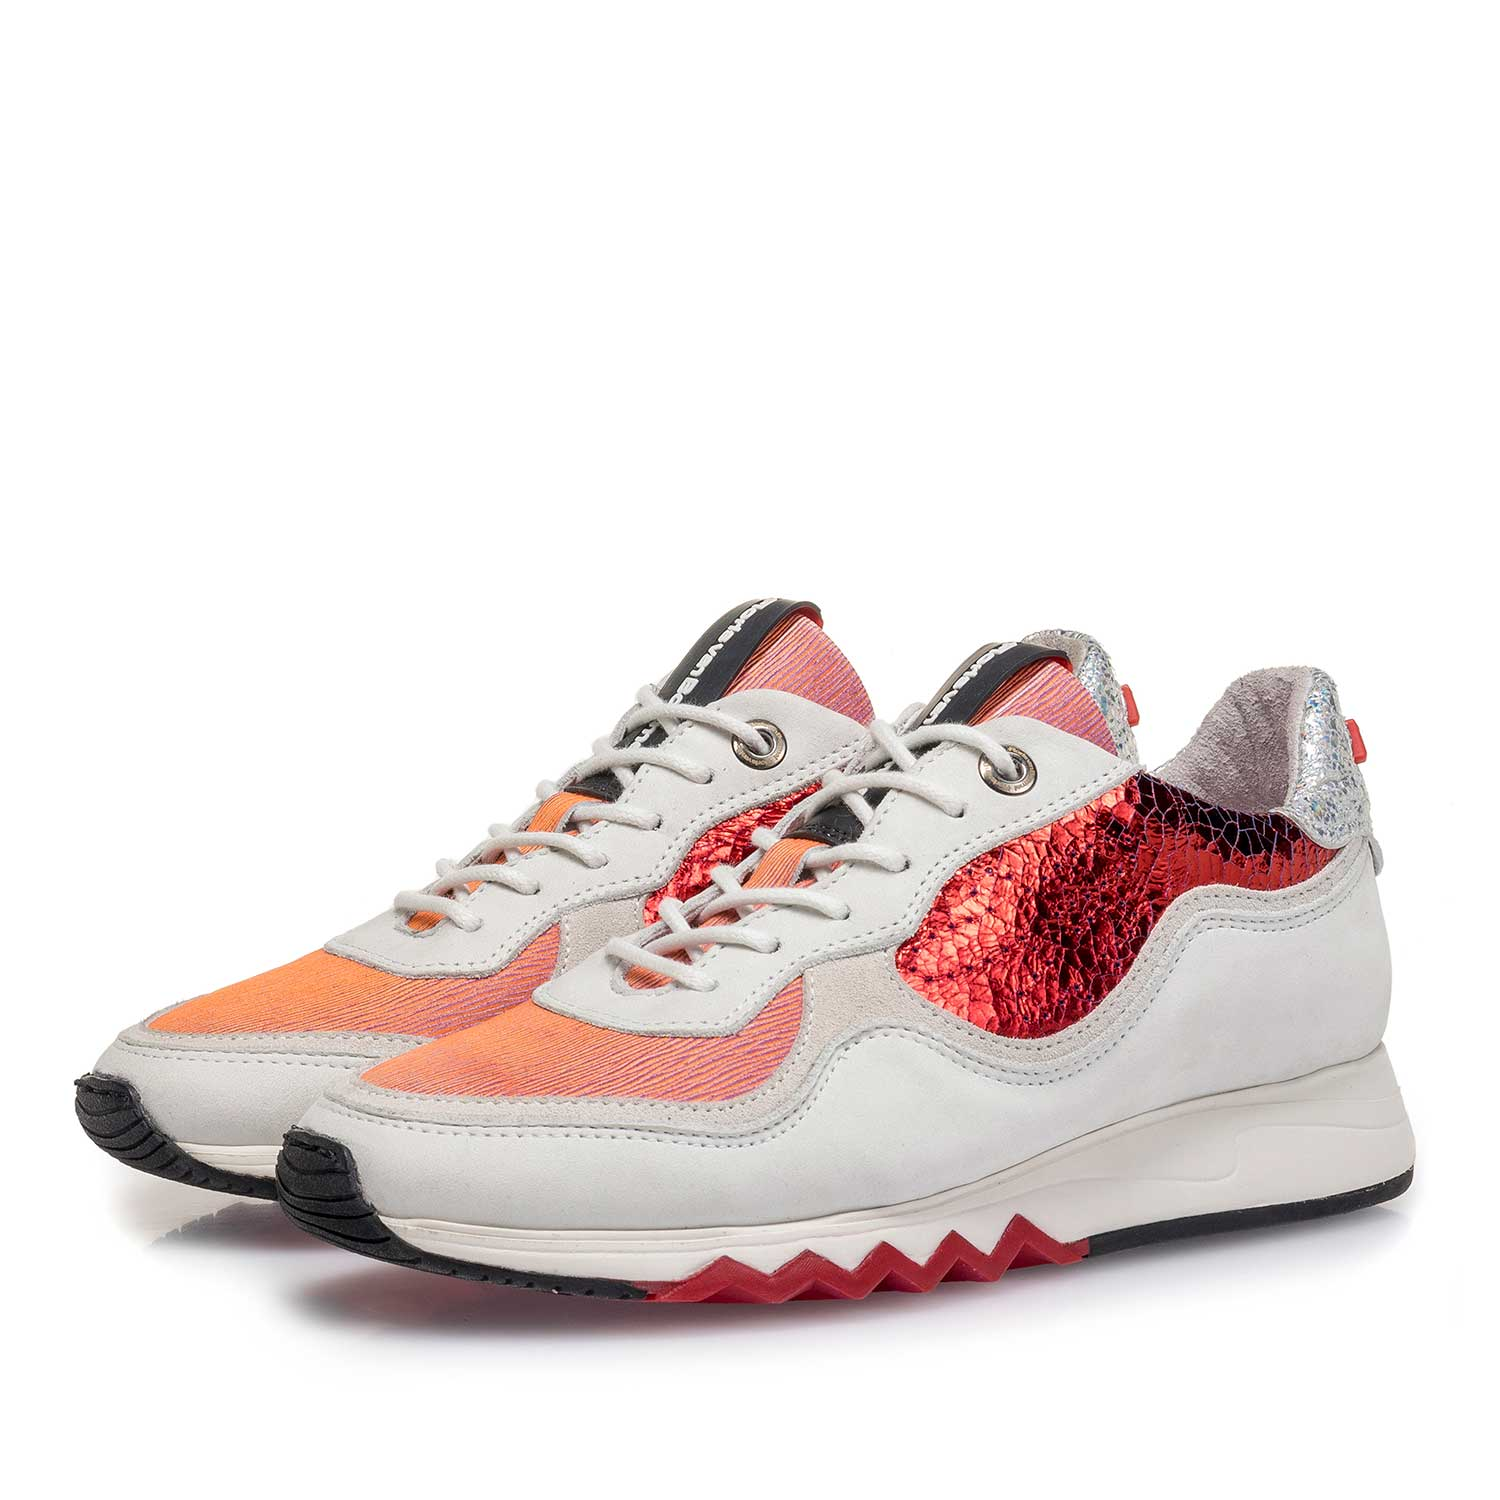 85265/08 - White nubuck leather sneaker with red details